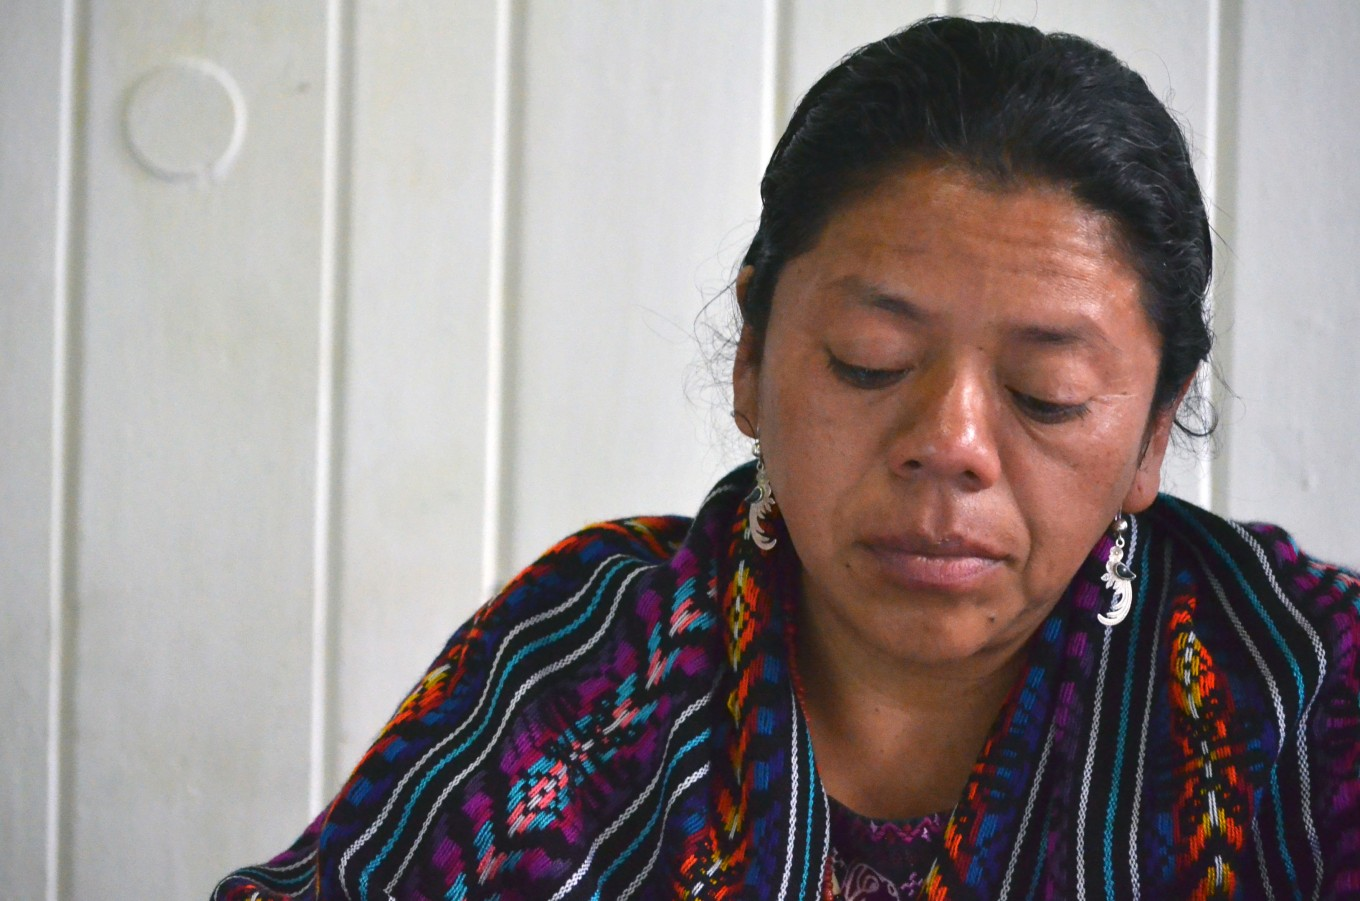 Thanks, mom, says Guatemala indigenous leader up for rights prize